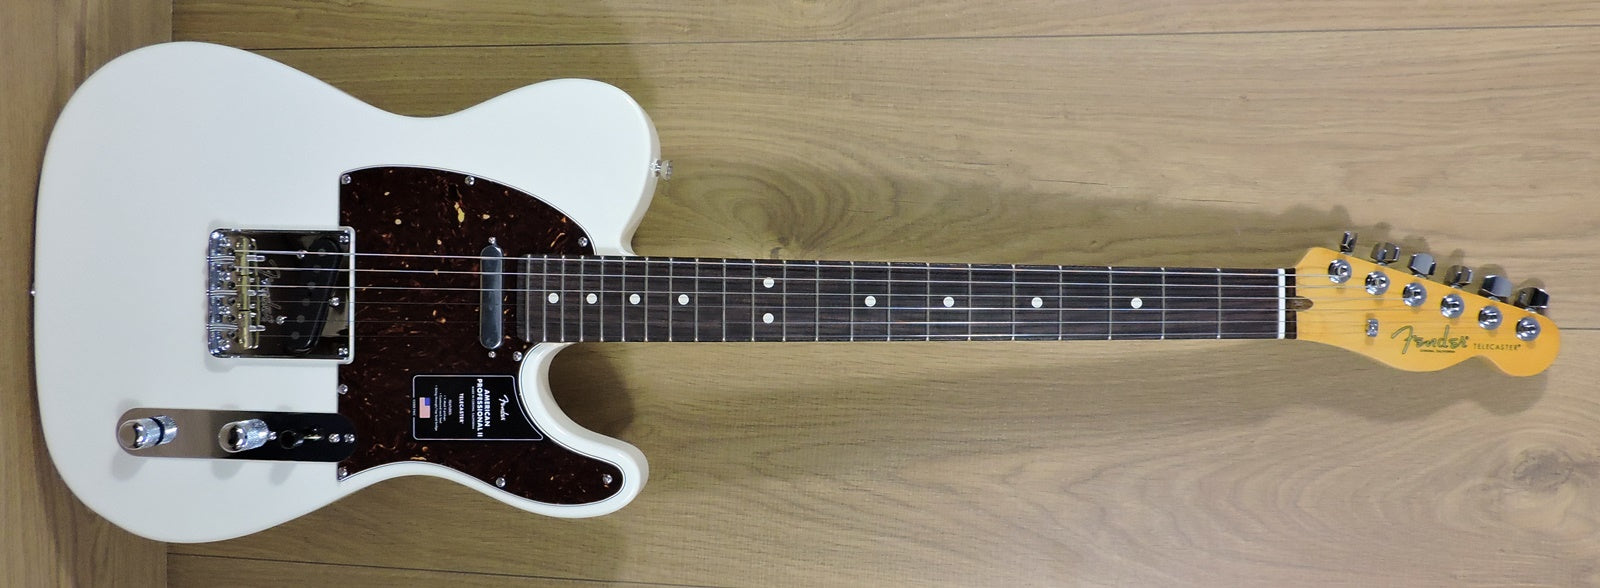 Fender American Professional II Telecaster, Olympic White, Rosewood Neck - IN STOCK NOW!